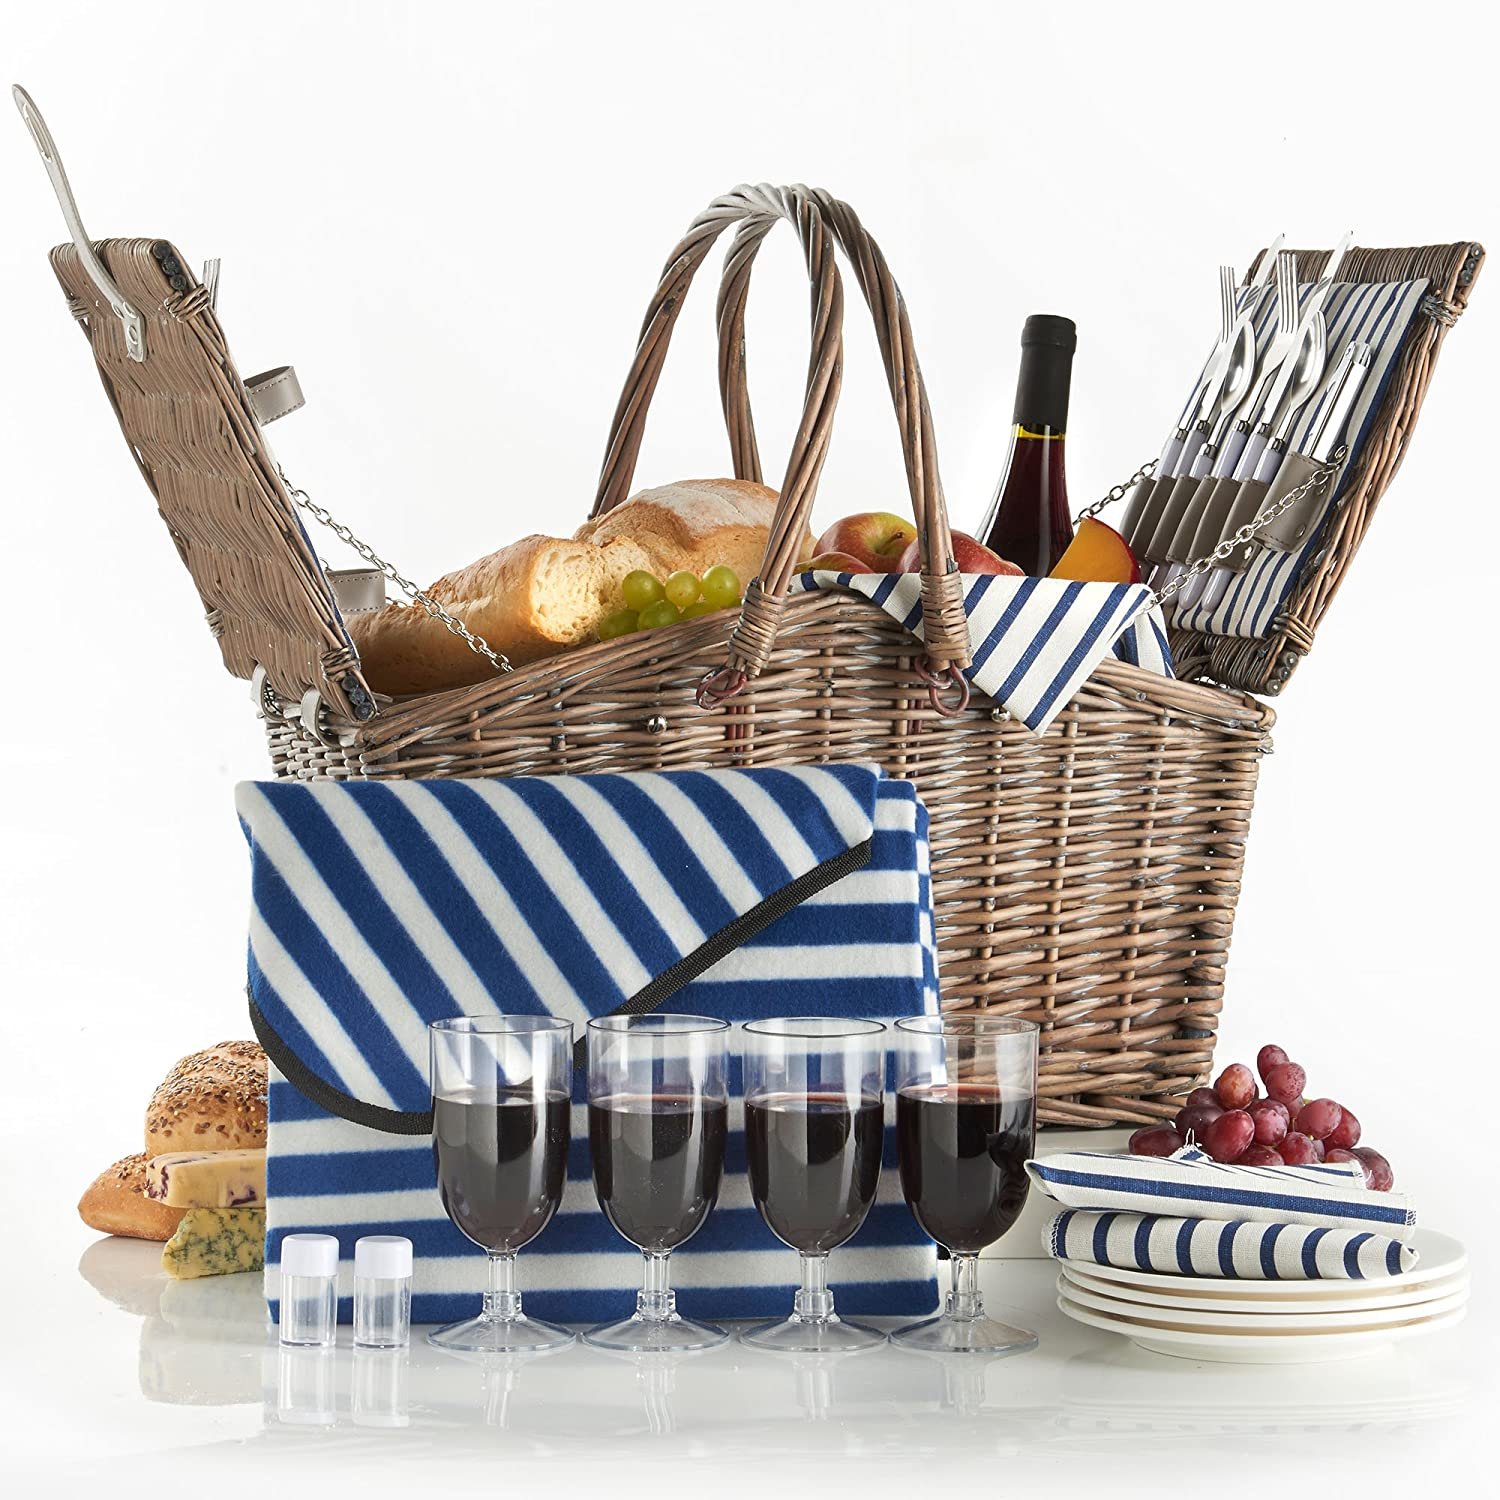 Amazon.com  VonShef Deluxe 4 Person Folding Handle Picnic Basket H&er with Cutlery Plates Glasses Tableware \u0026 Fleece Blanket  Garden \u0026 Outdoor  sc 1 st  Amazon.com & Amazon.com : VonShef Deluxe 4 Person Folding Handle Picnic Basket ...